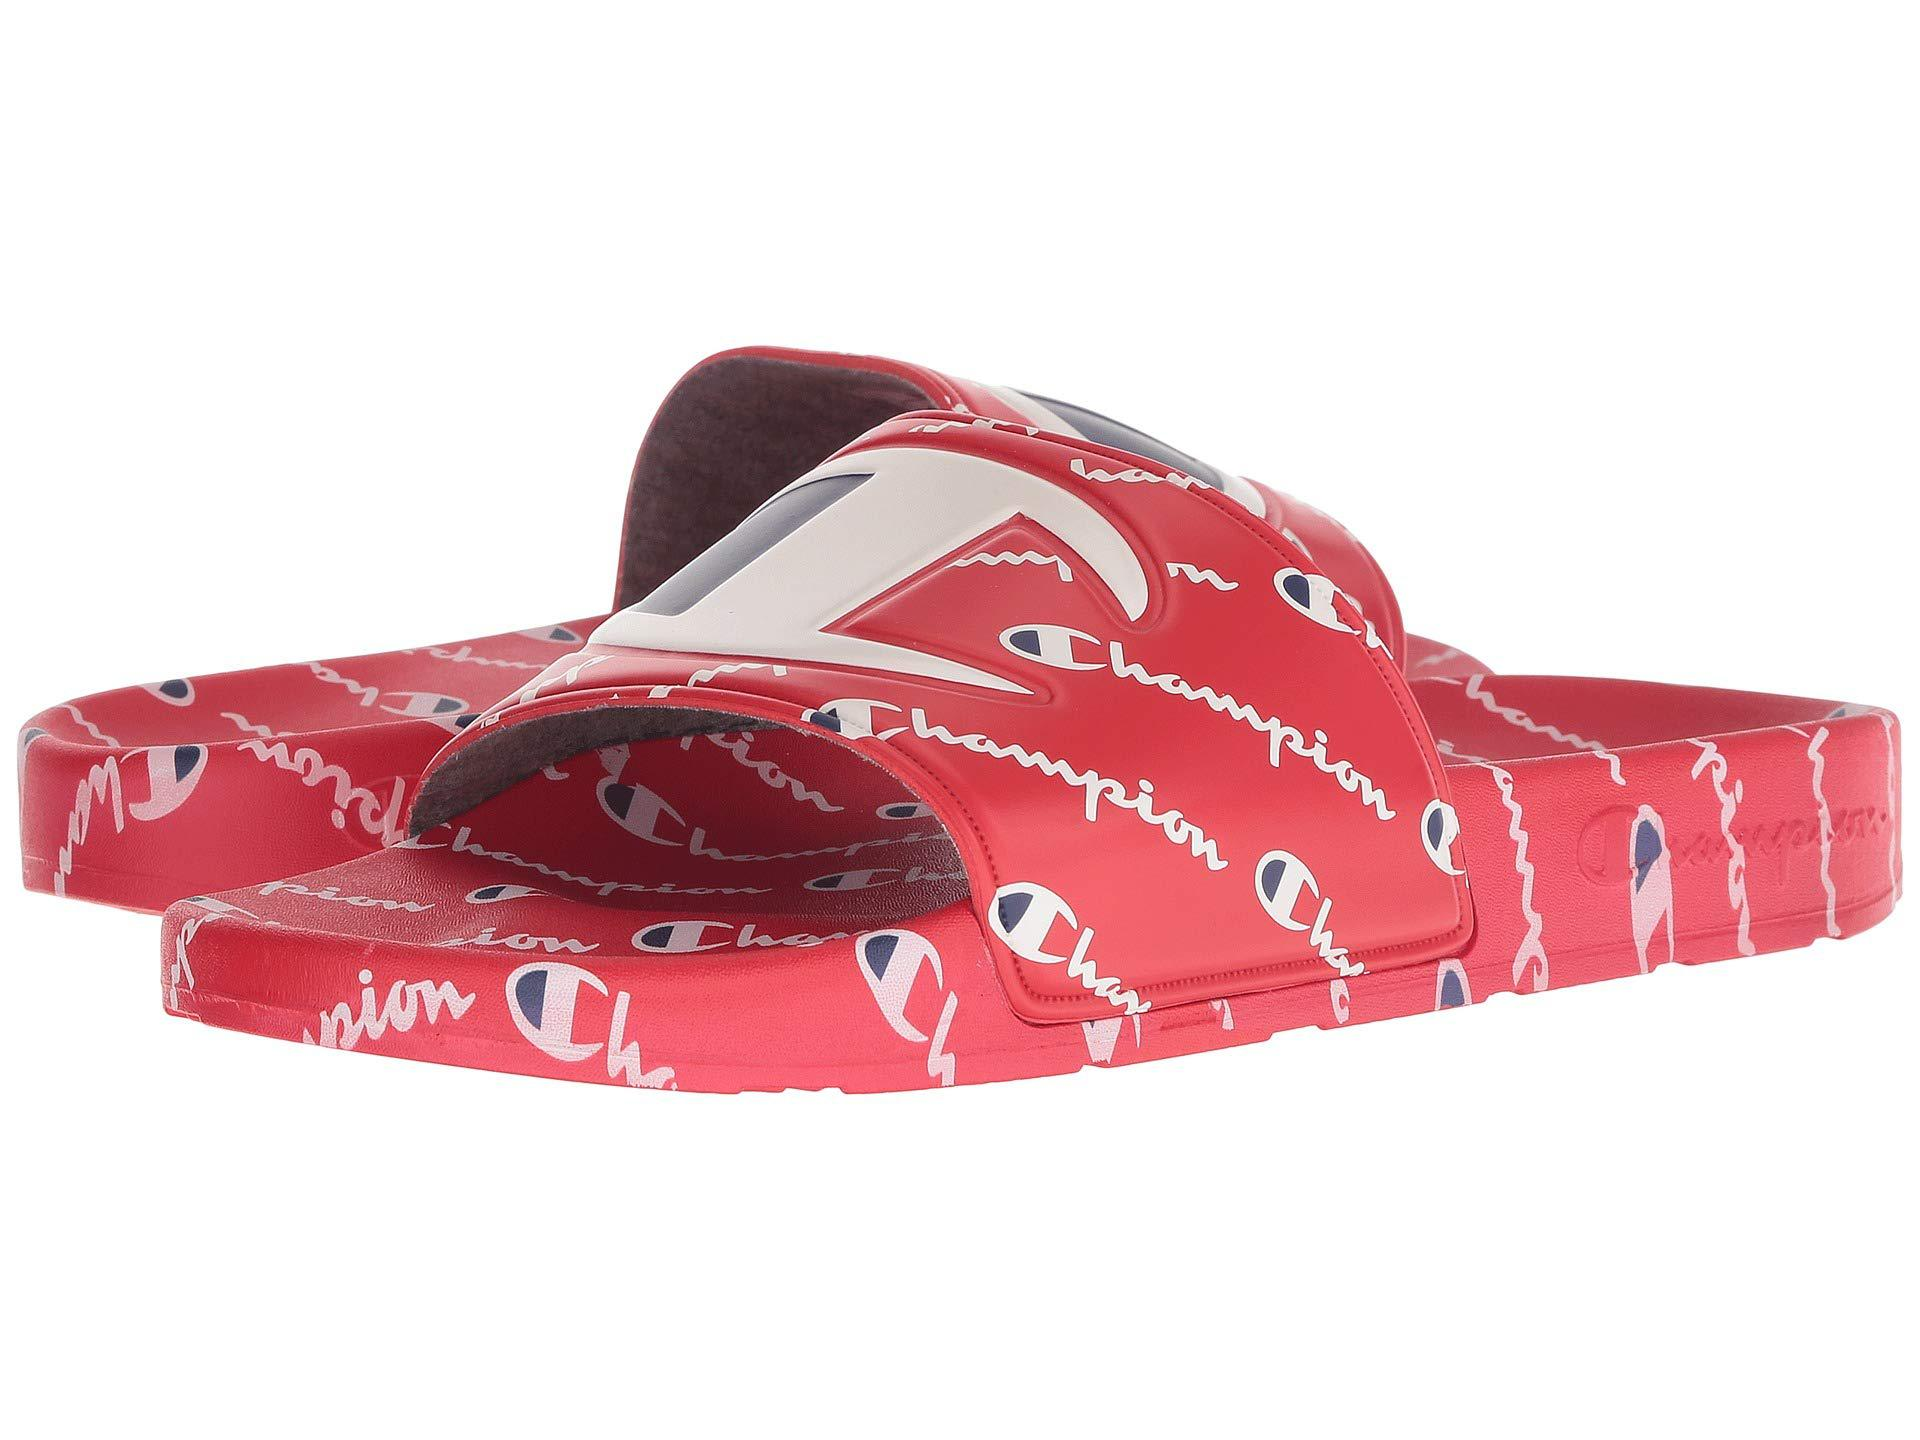 f4ea53ffca3 Lyst - Champion Ipo Repeat (red red Repeat) Men s Slide Shoes in Red ...